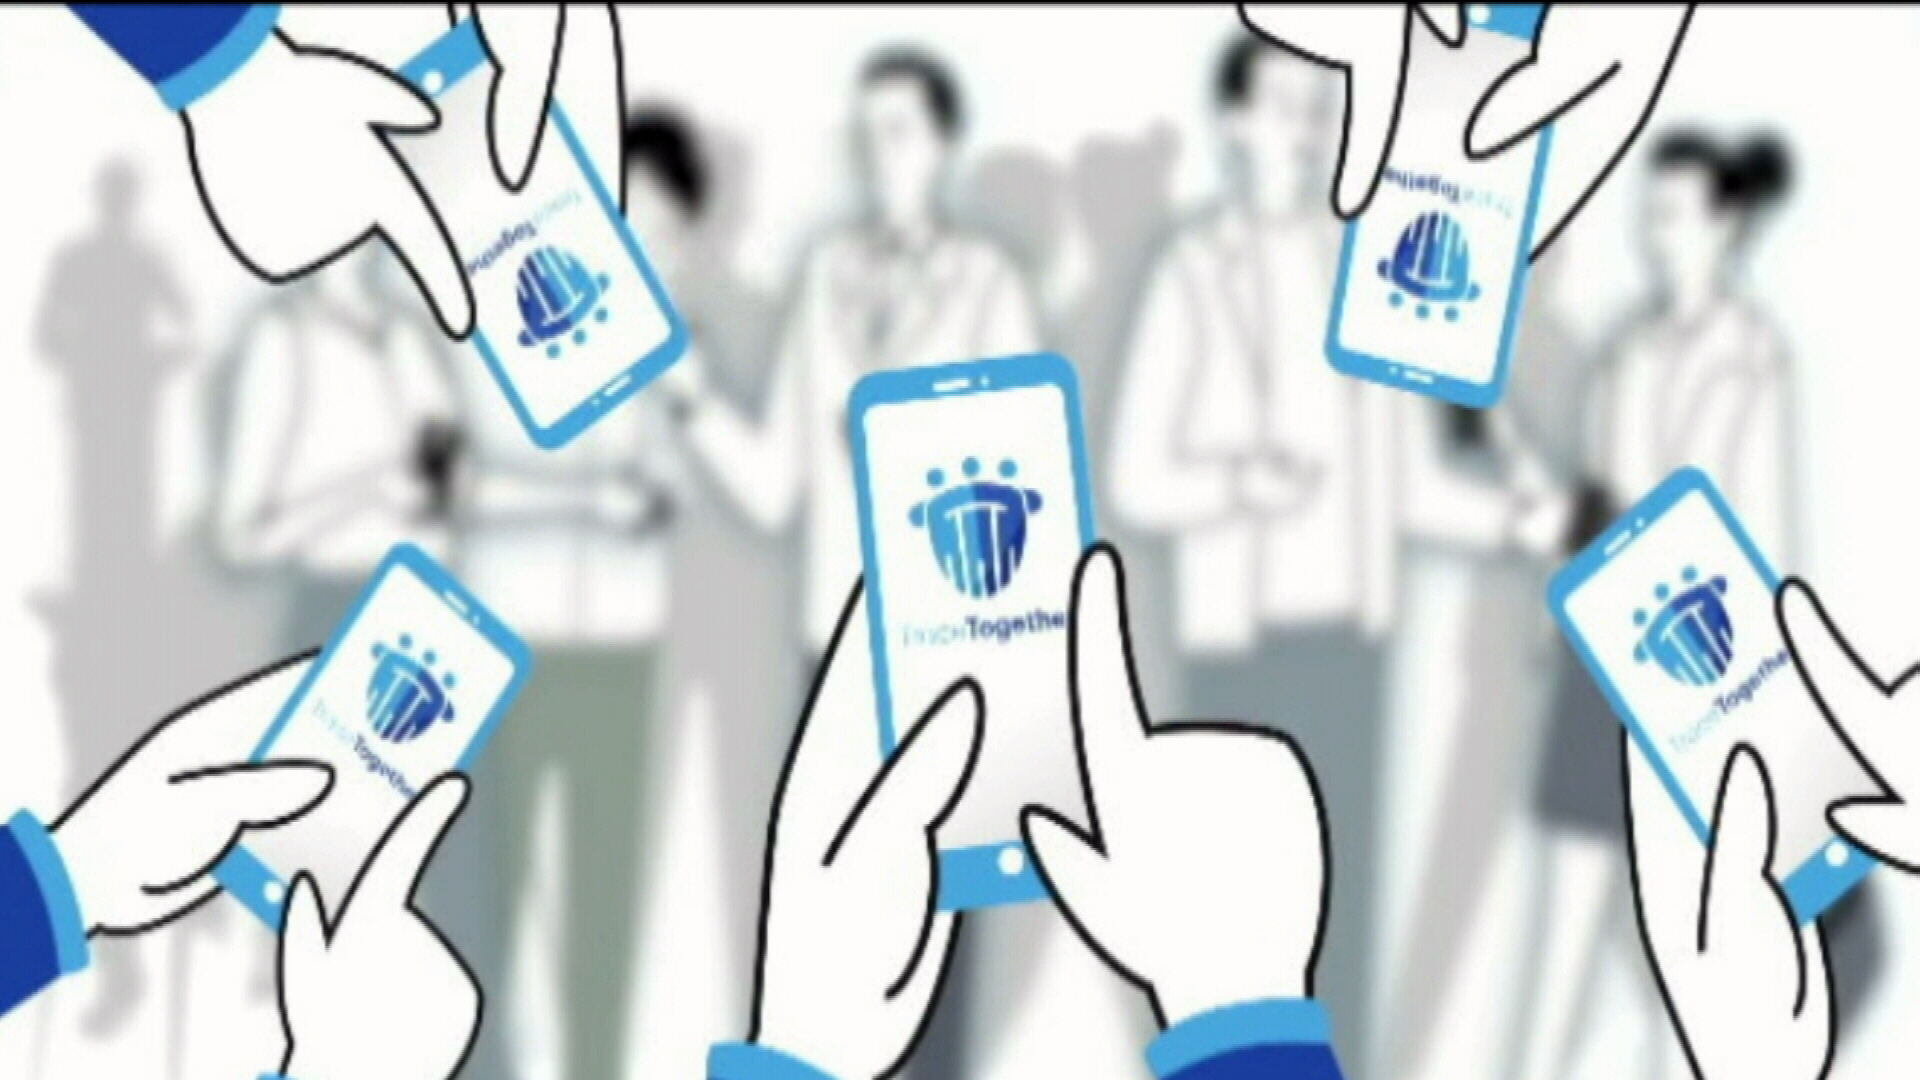 Government's controversial tracing app to launch today